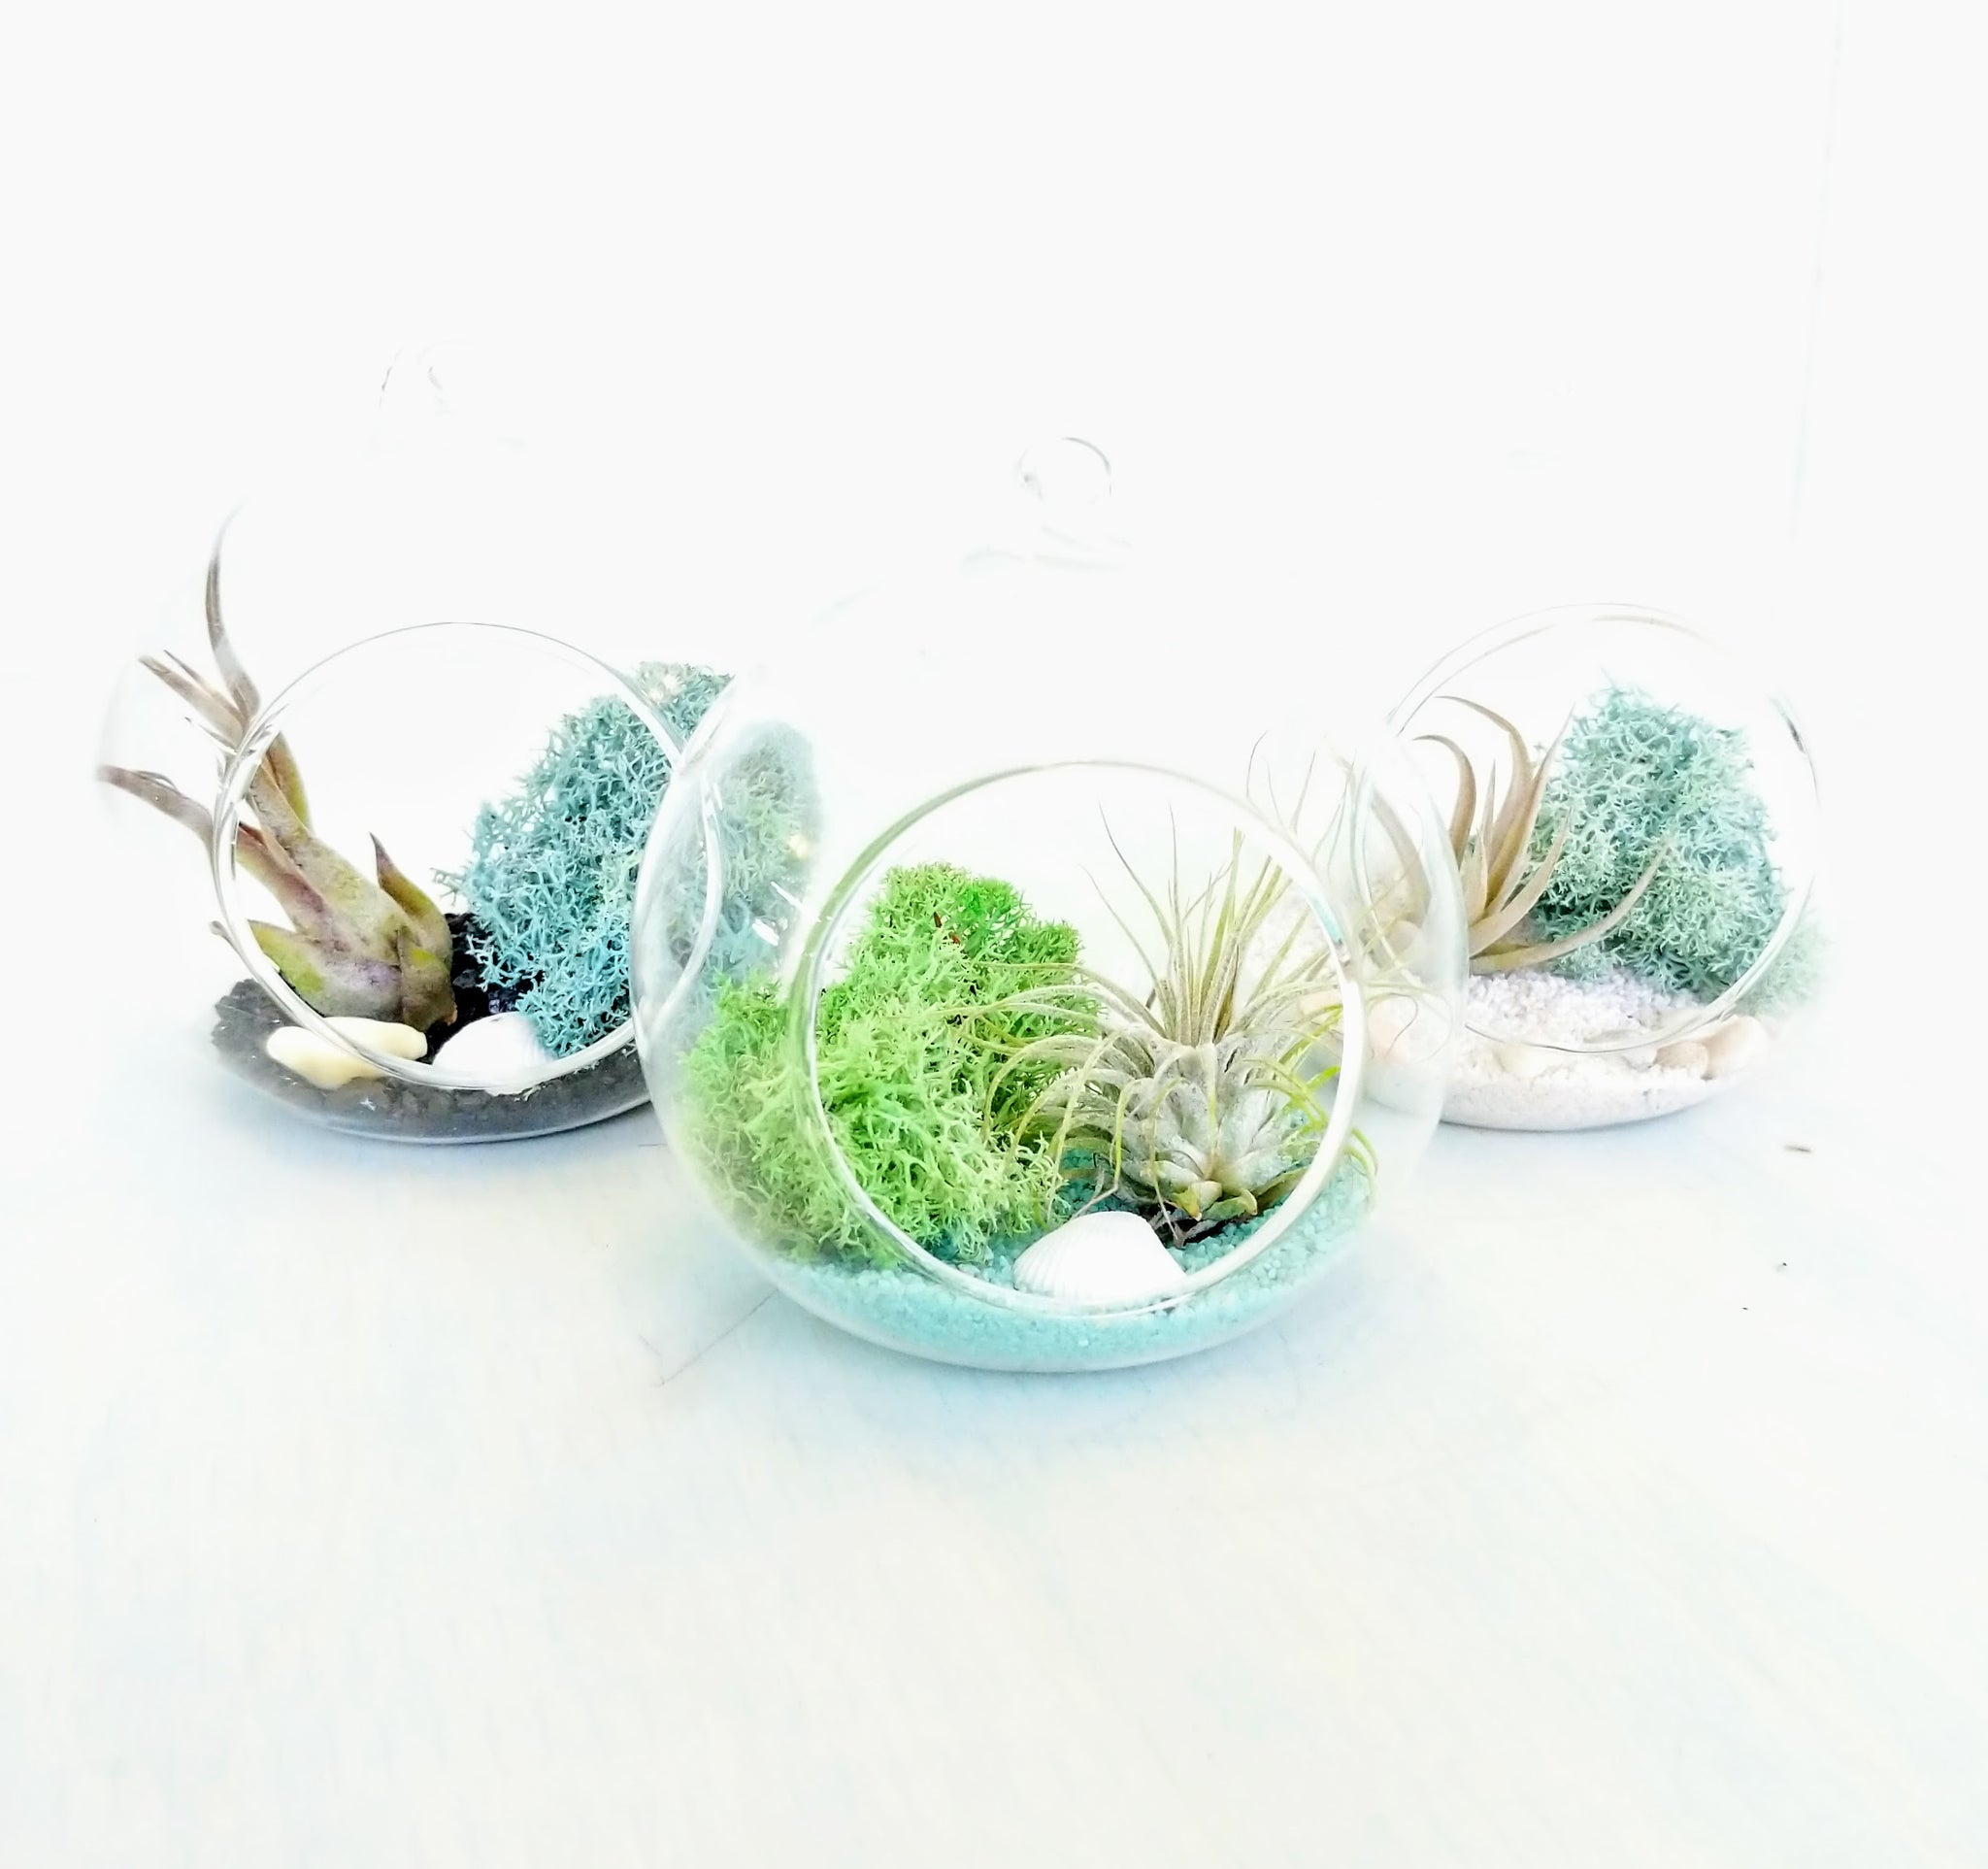 DIY Air Plant Terrarium Kit - Hanging Globe - By Plant Collective | Indoor House Plants, Succulents, Air Plants & Terrariums - Toronto Canada